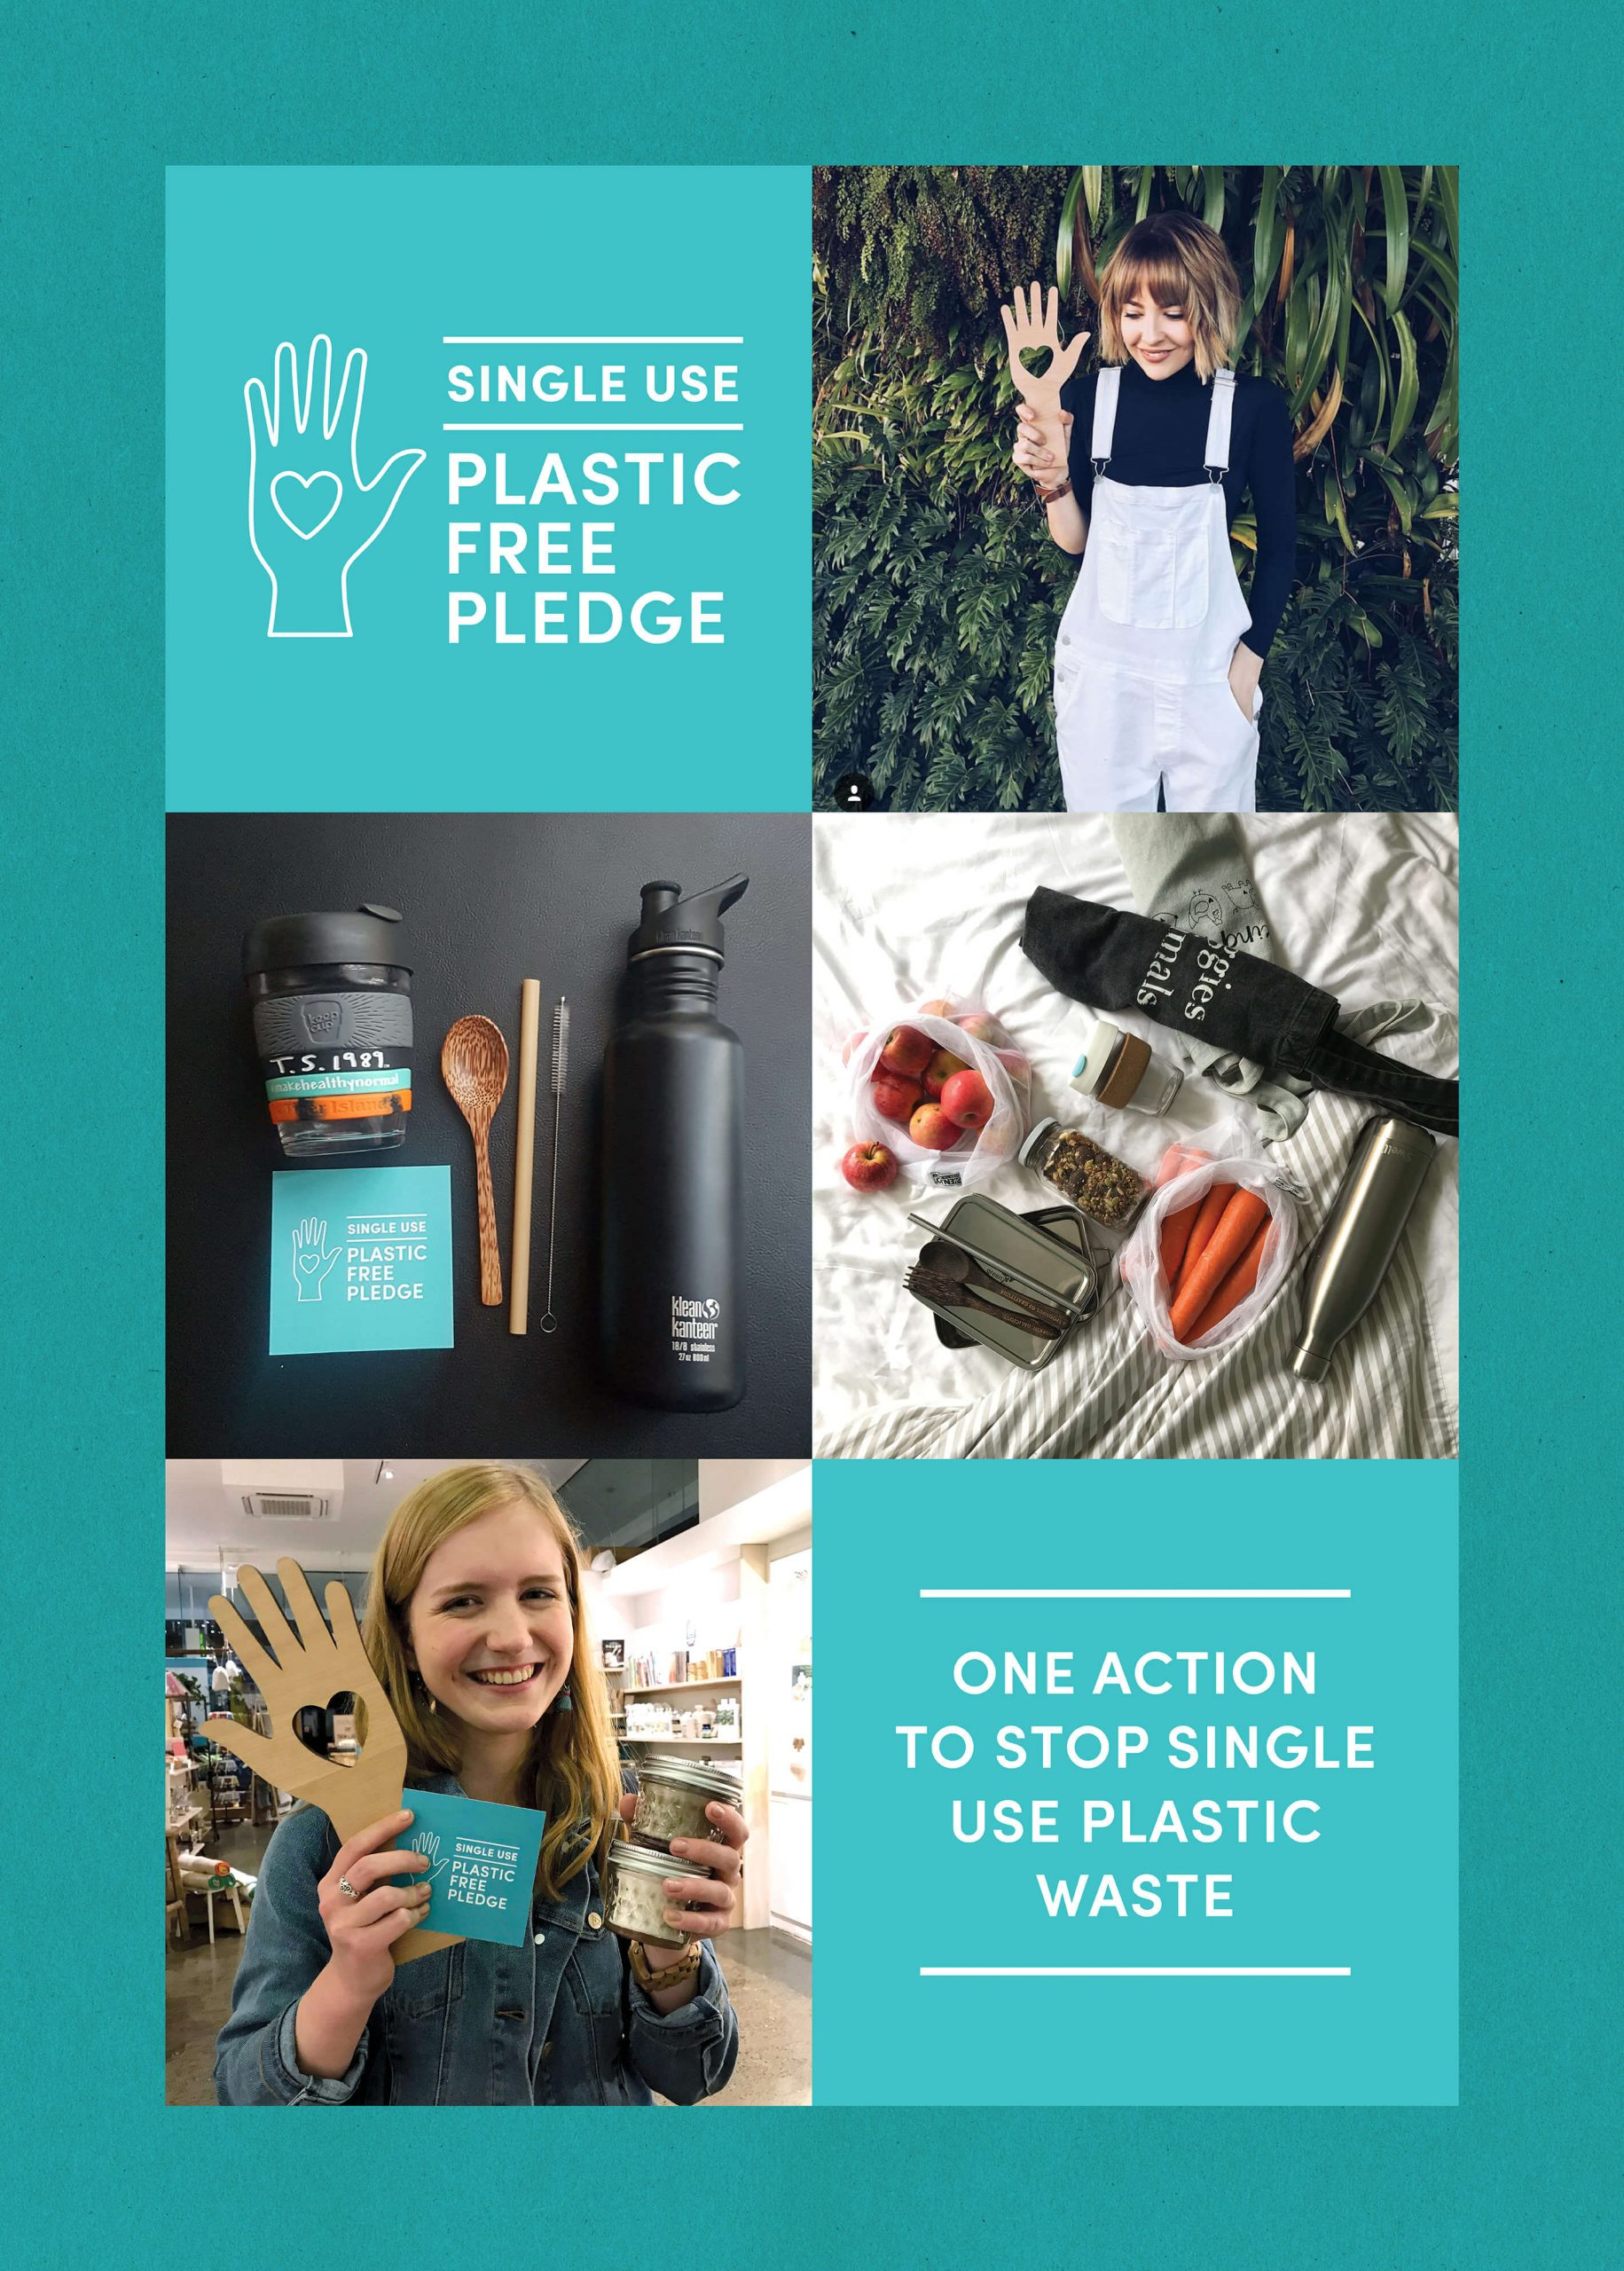 plastic free july social media response showing user generate photographs, flatlays and campaign graphics